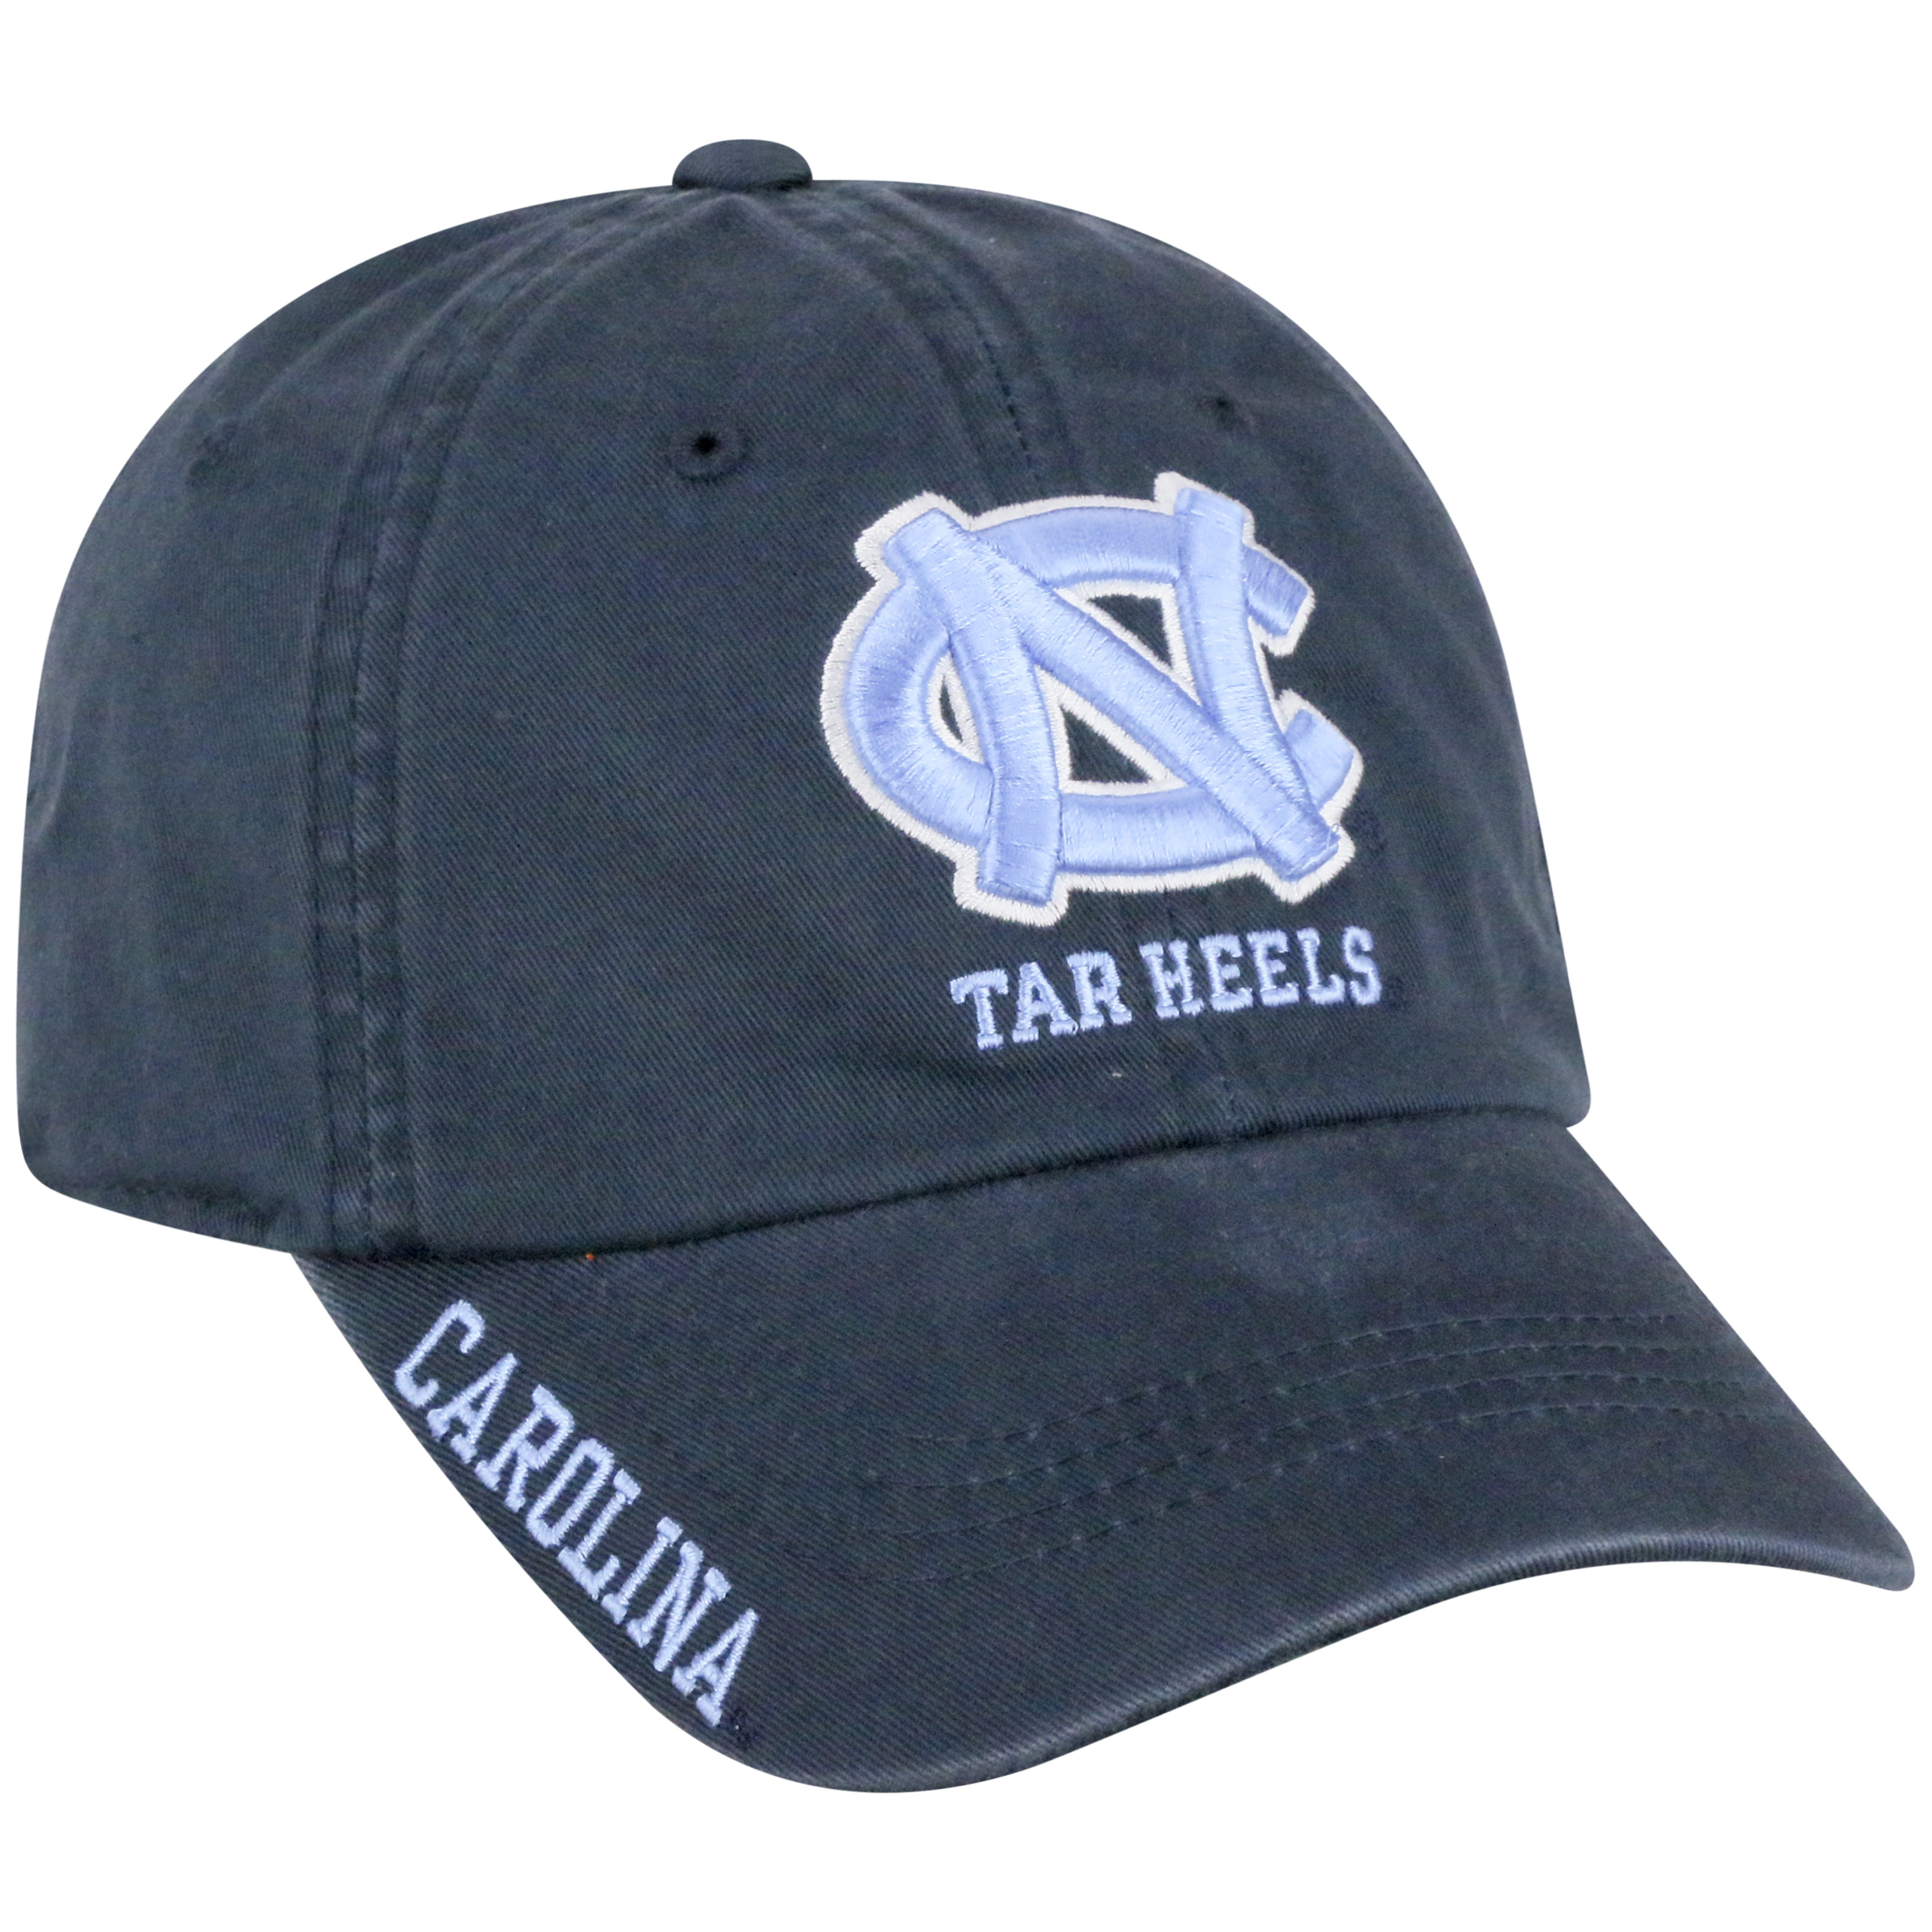 904a7d644 North Carolina Tar Heels Team Shop - Walmart.com